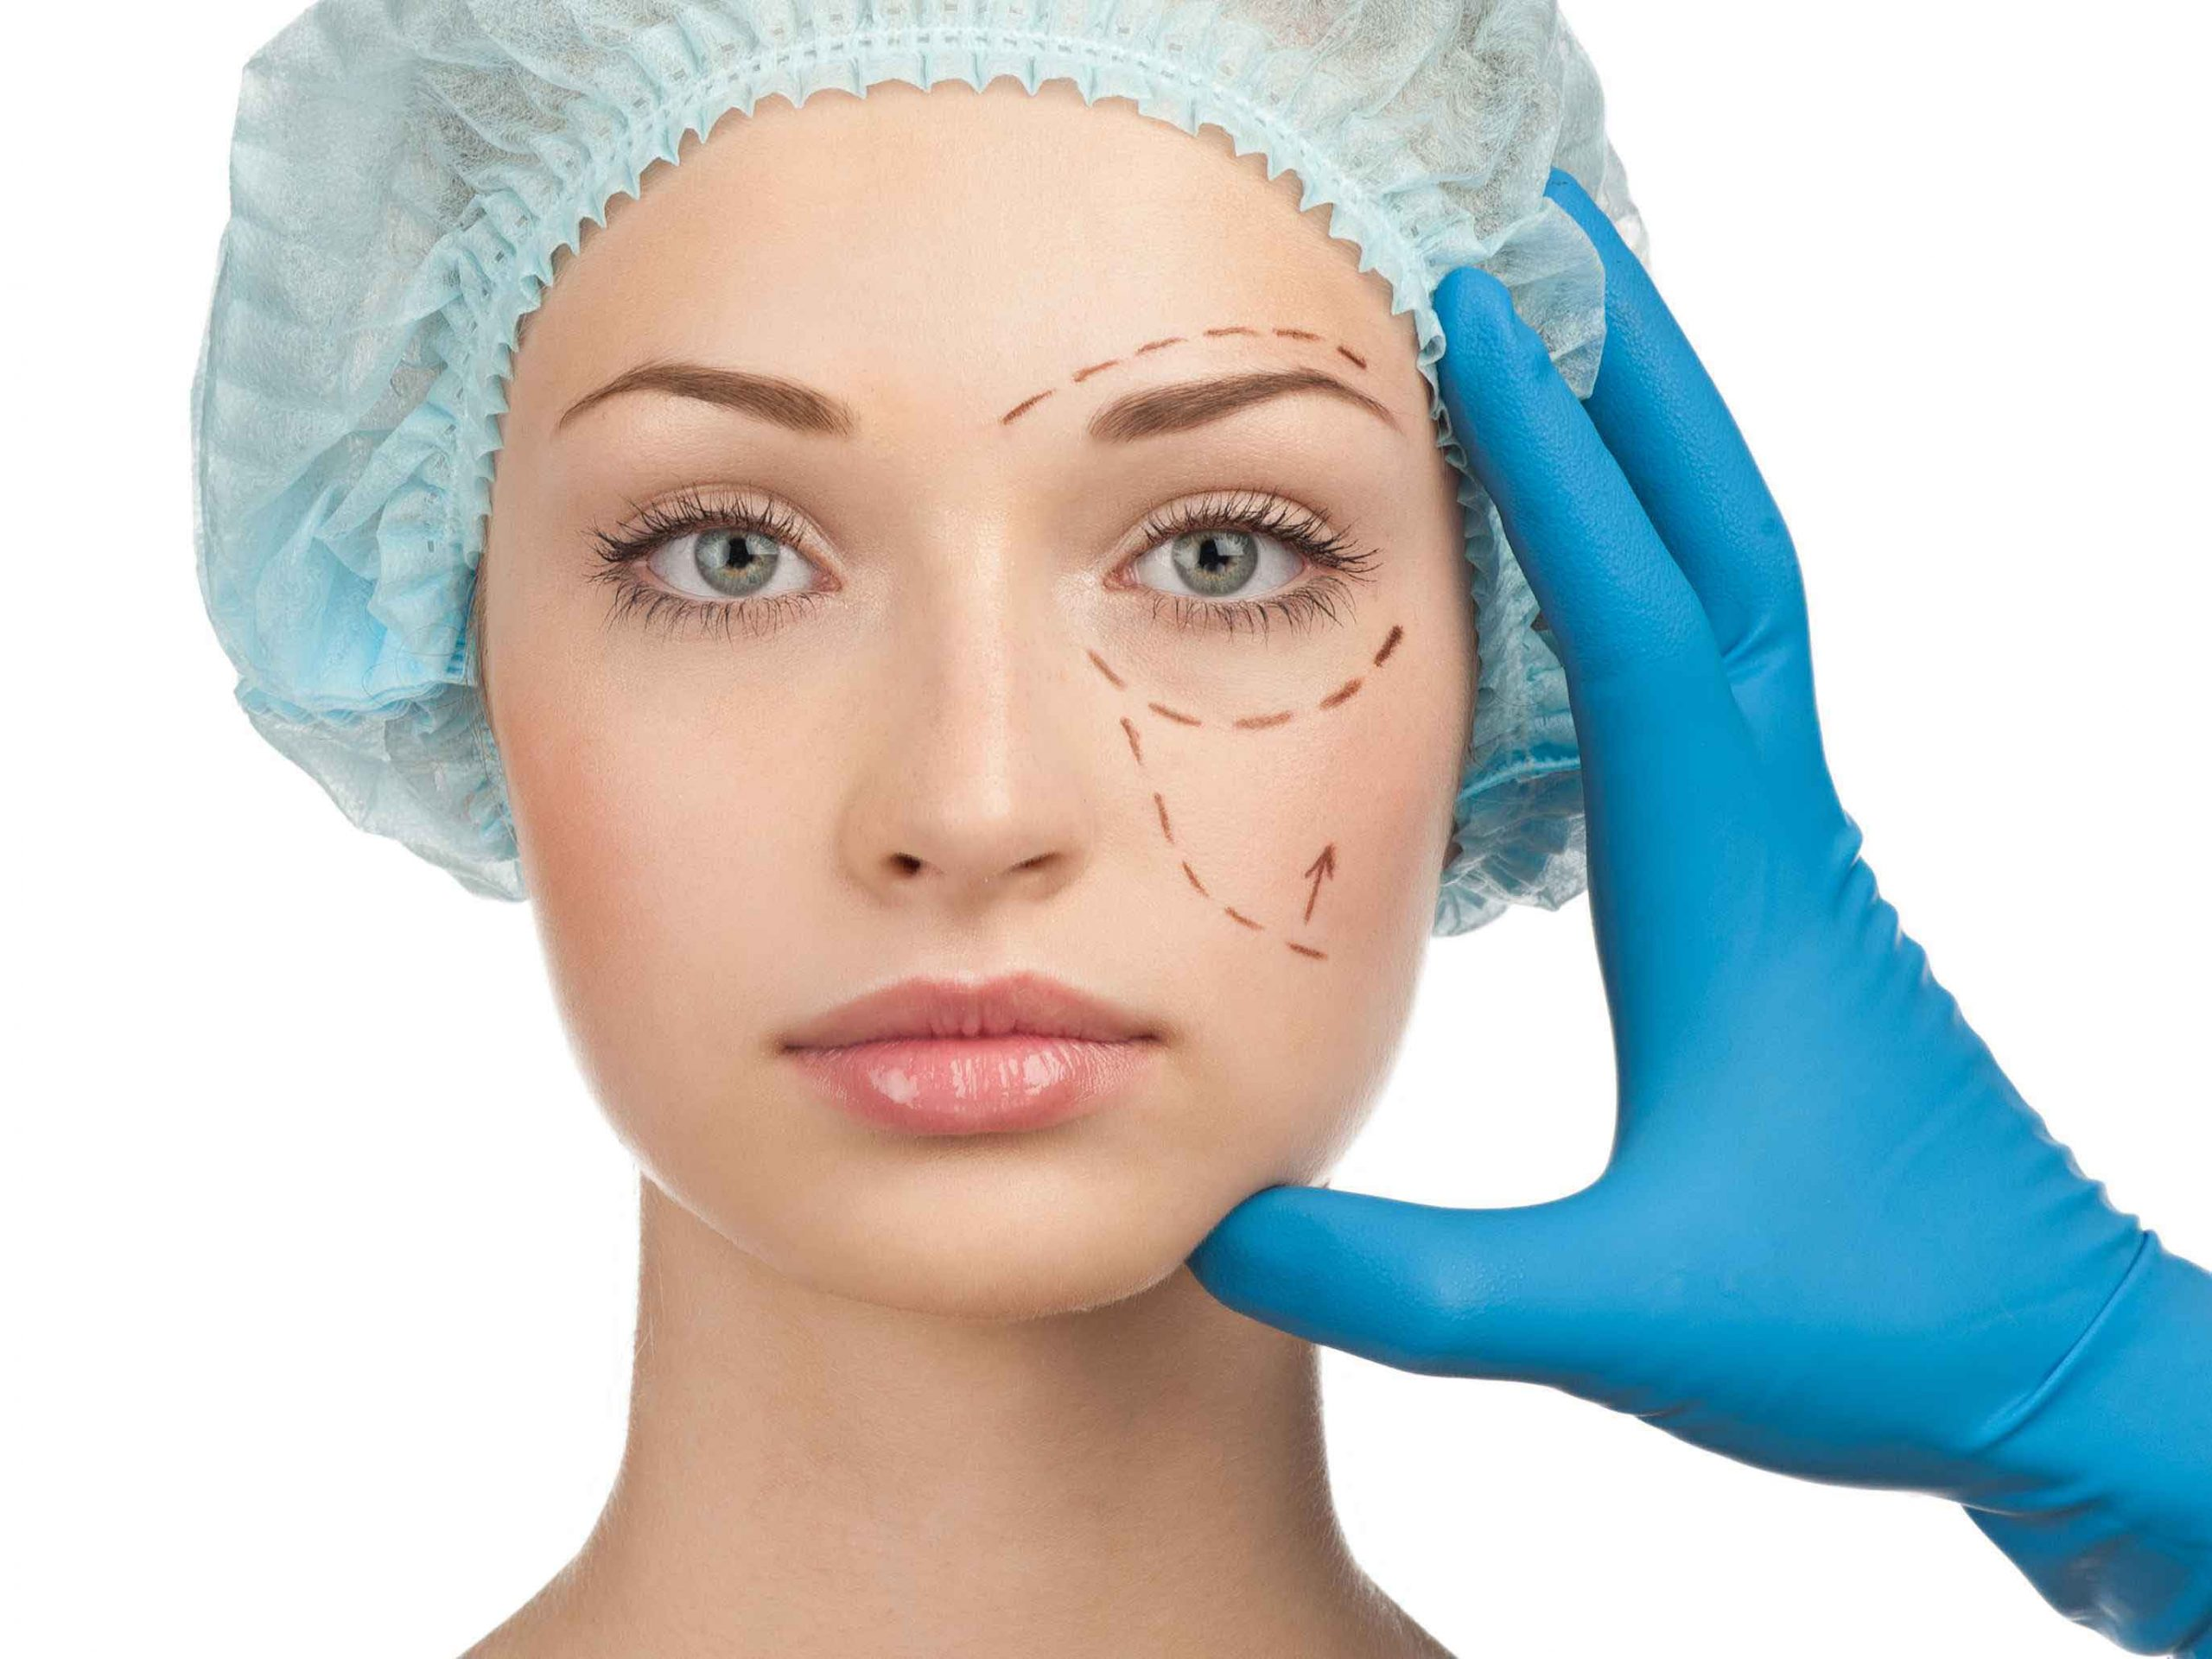 Plastic surgery cosmetic surgery 3